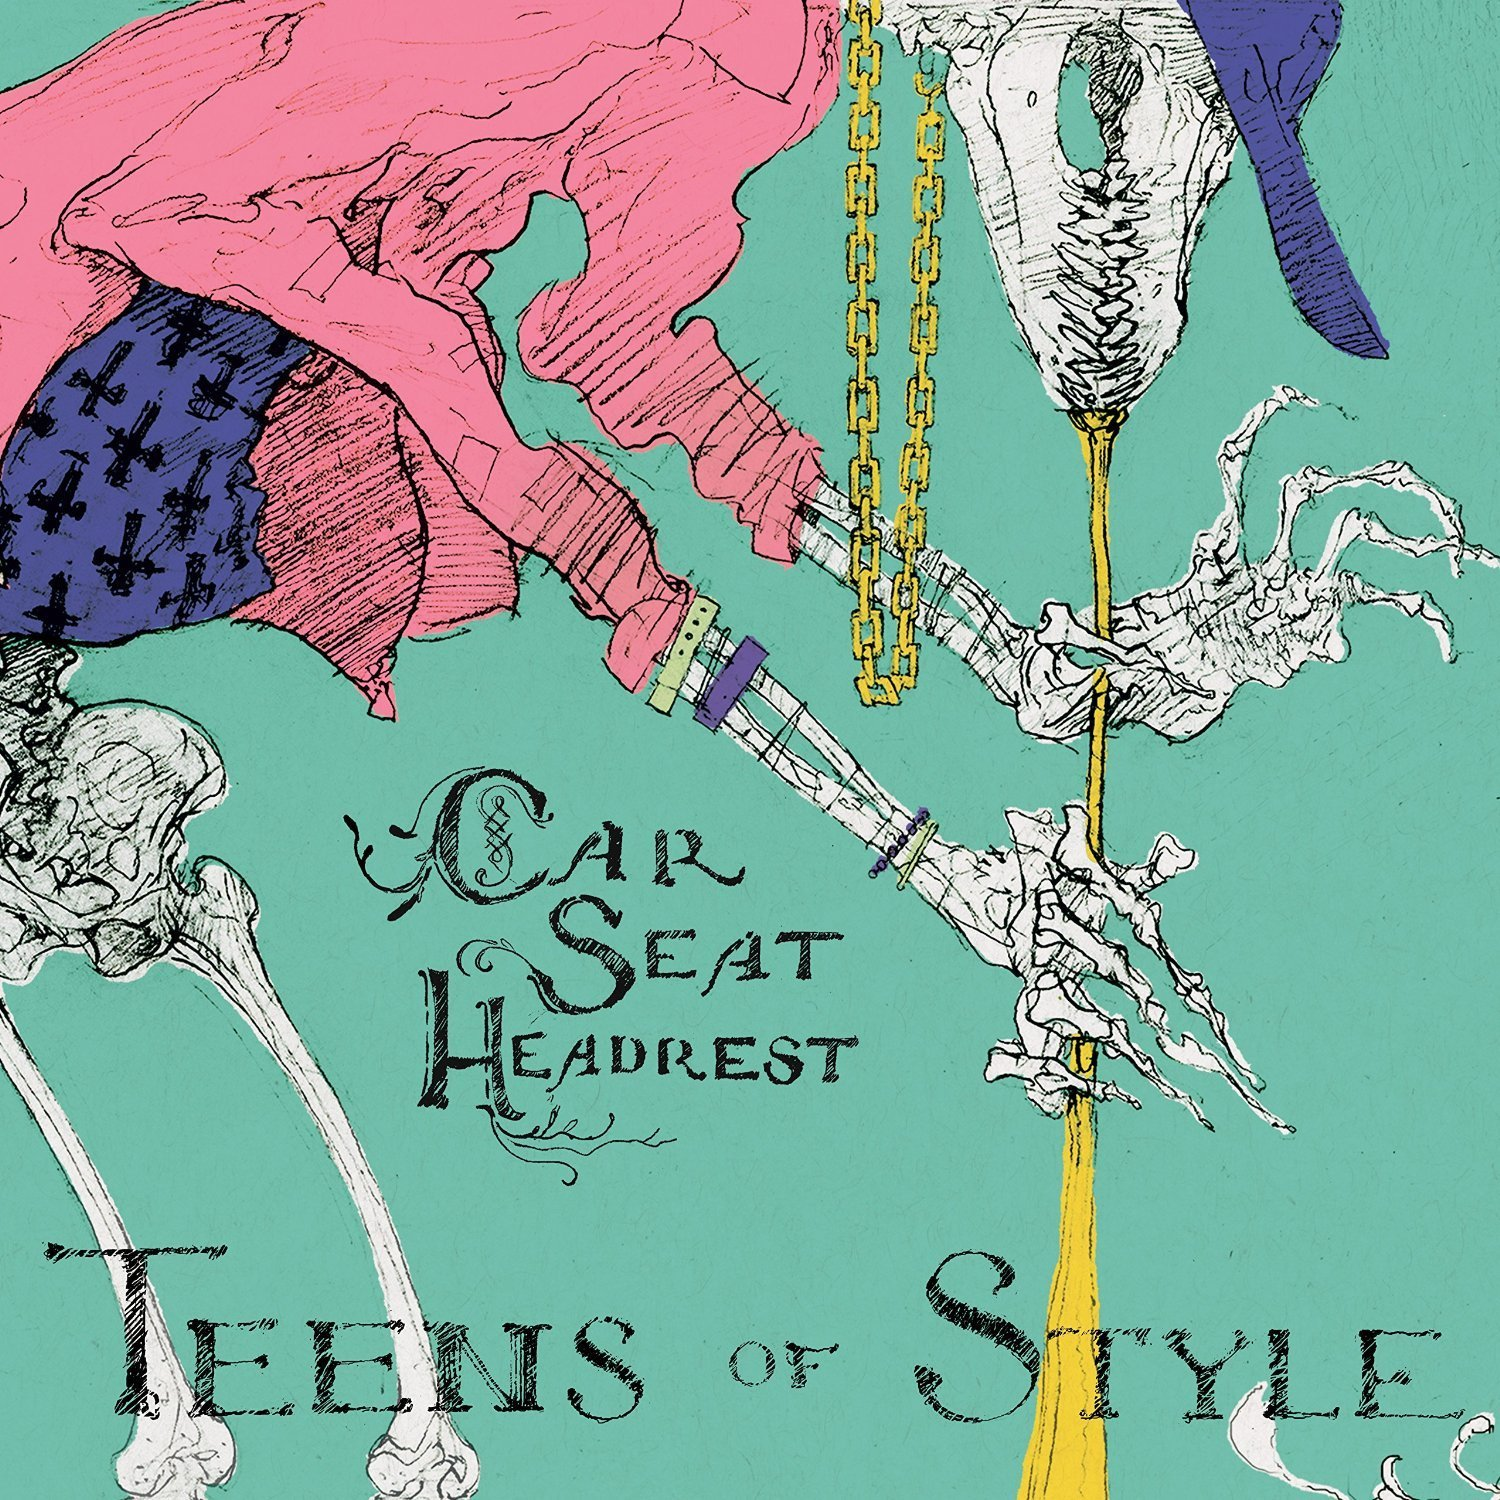 Car Seat Headrest: Teens Of Style [Album Review]